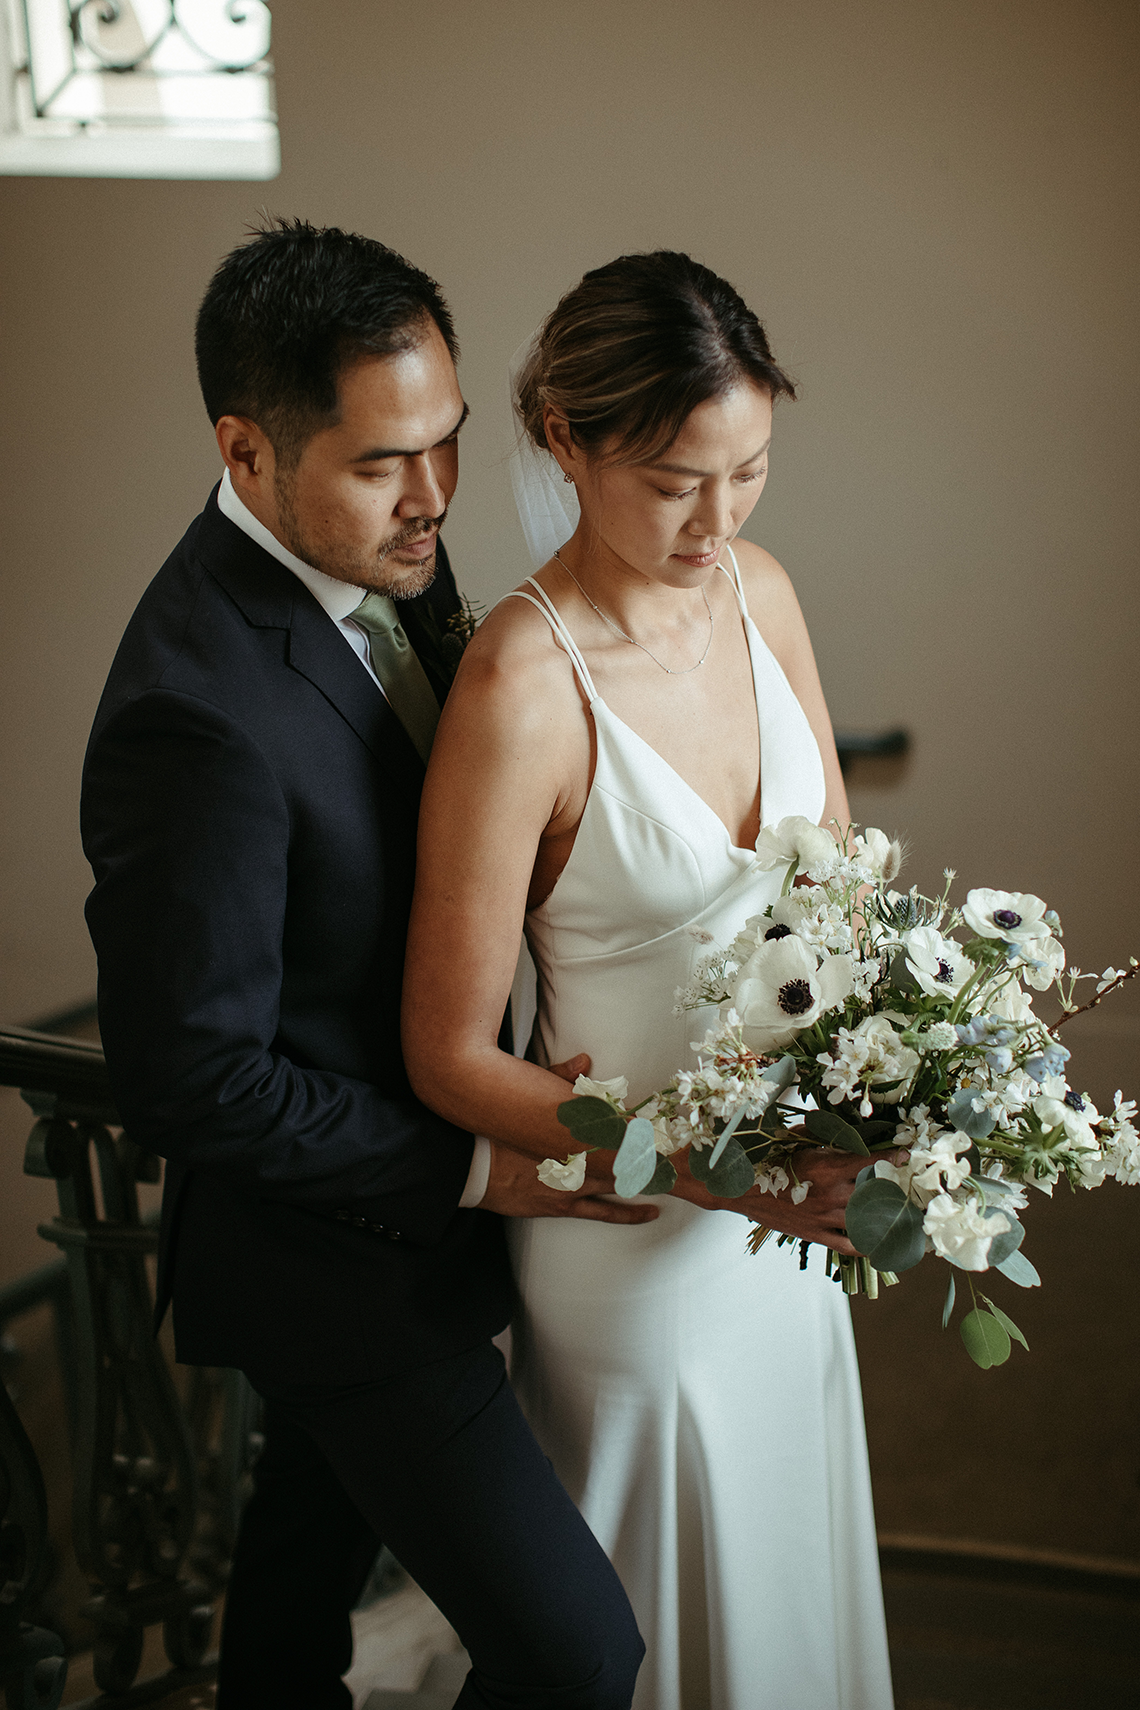 Stunning Intimate Elopement at Home – Gipe Photography 24